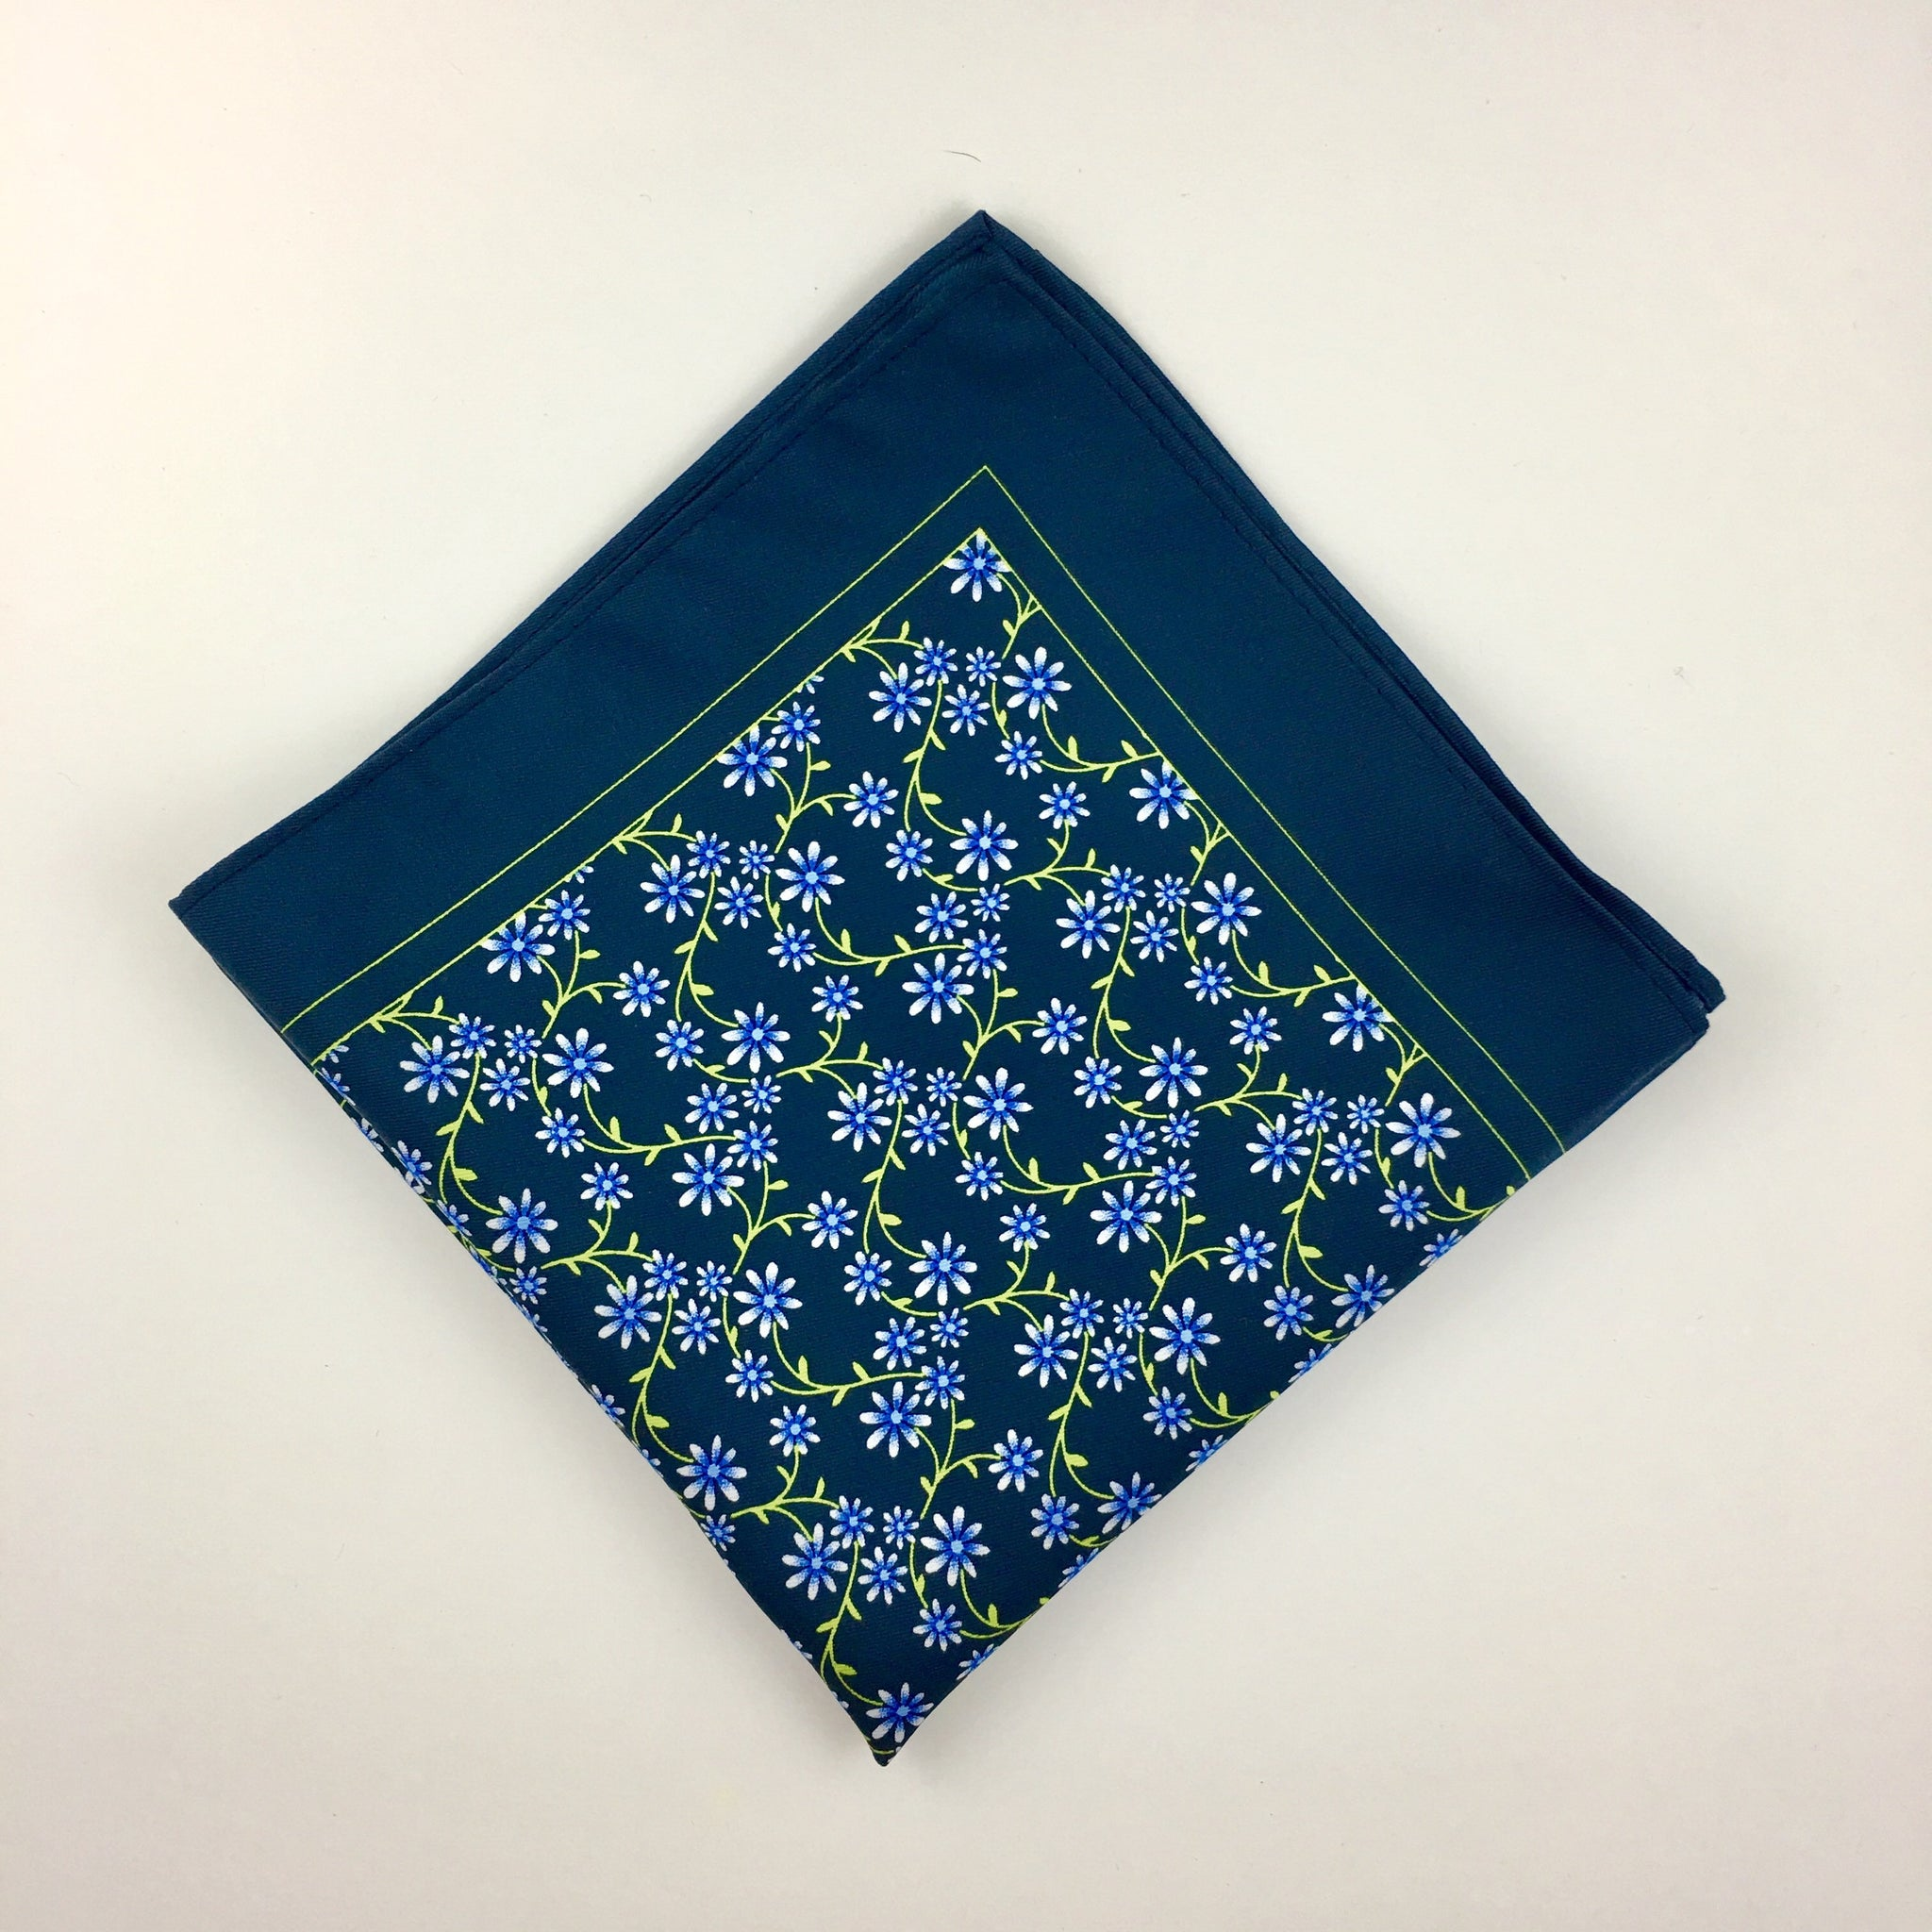 The-Dirty-Collar- Key West Collection- Men's Pocket Squares- Men's Accessories